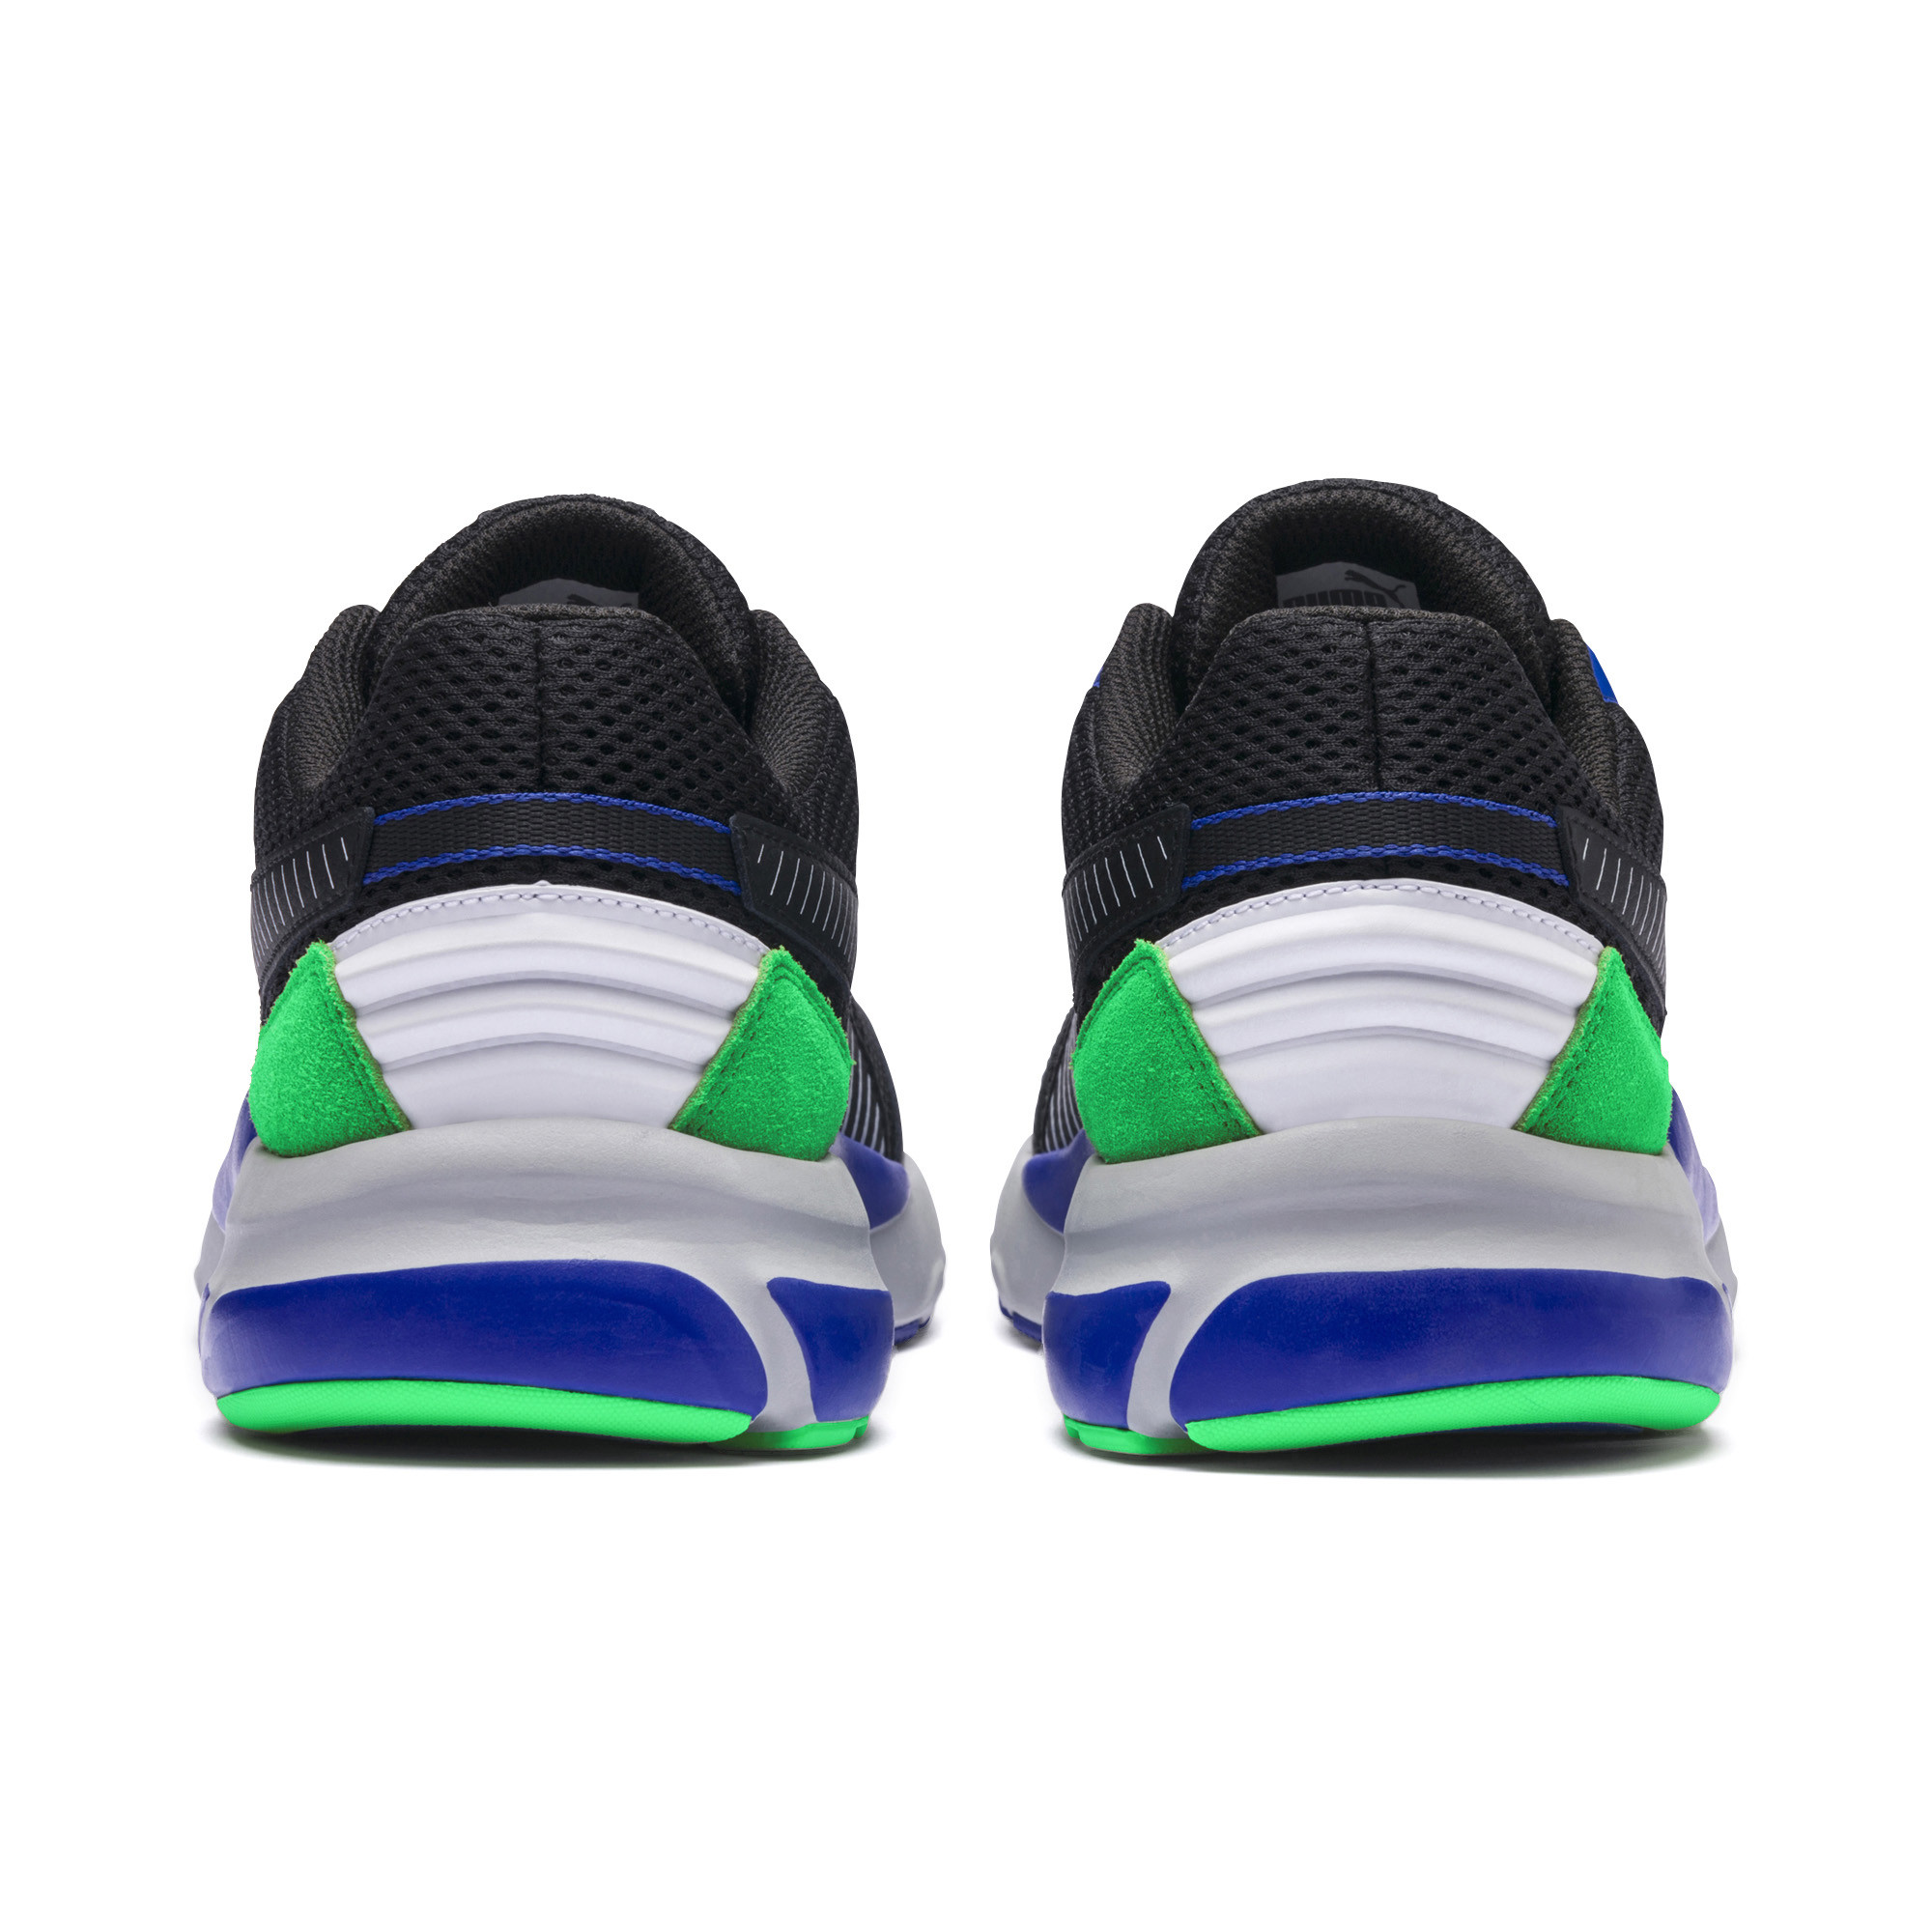 PUMA-Future-Runner-Premium-Men-039-s-Running-Shoes-Men-Shoe-Basics thumbnail 9